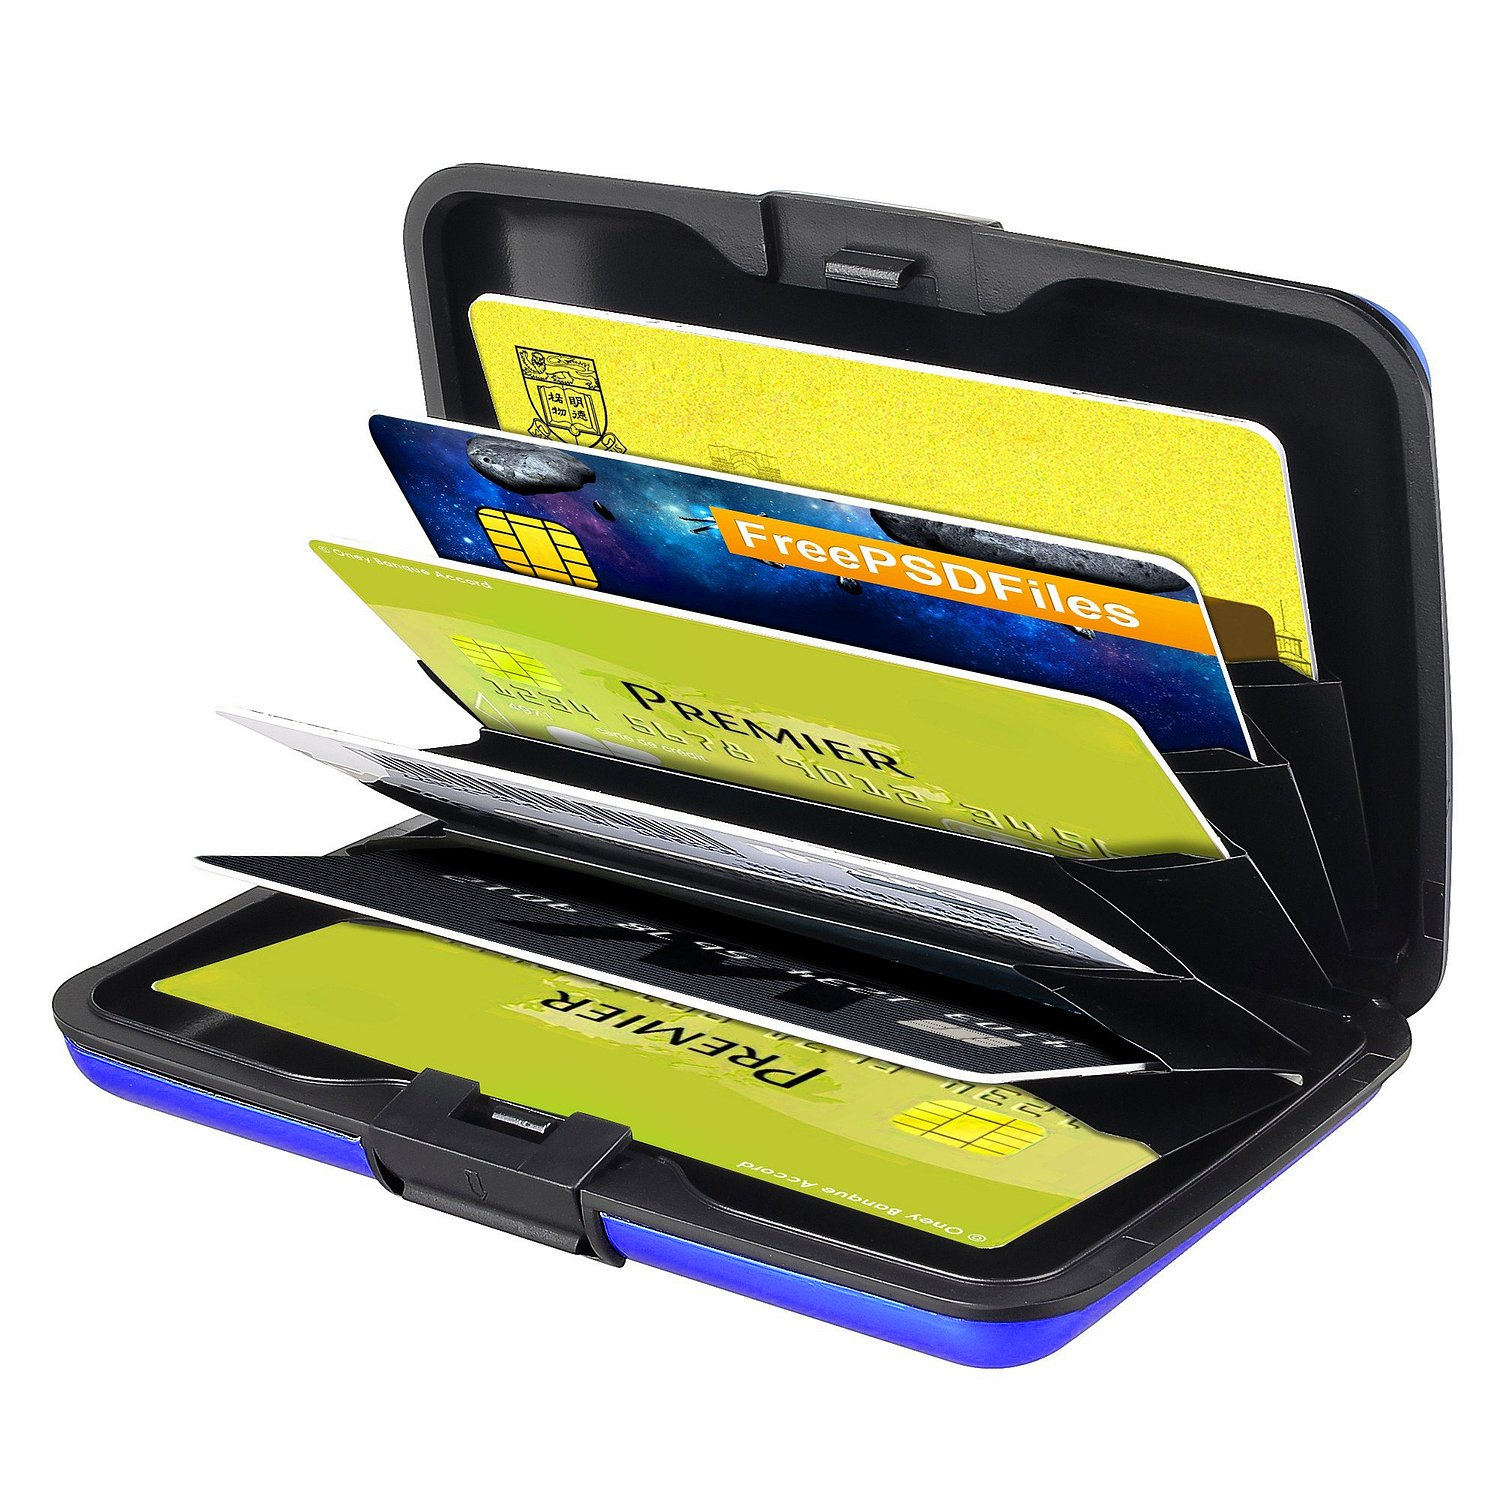 Credit Cards and Driver License for Men// Women Zodaca Protective Aluminum Coated Pocket Card Case Wallet Credit Card Holder with Multi Pockets for Business Cards Blue